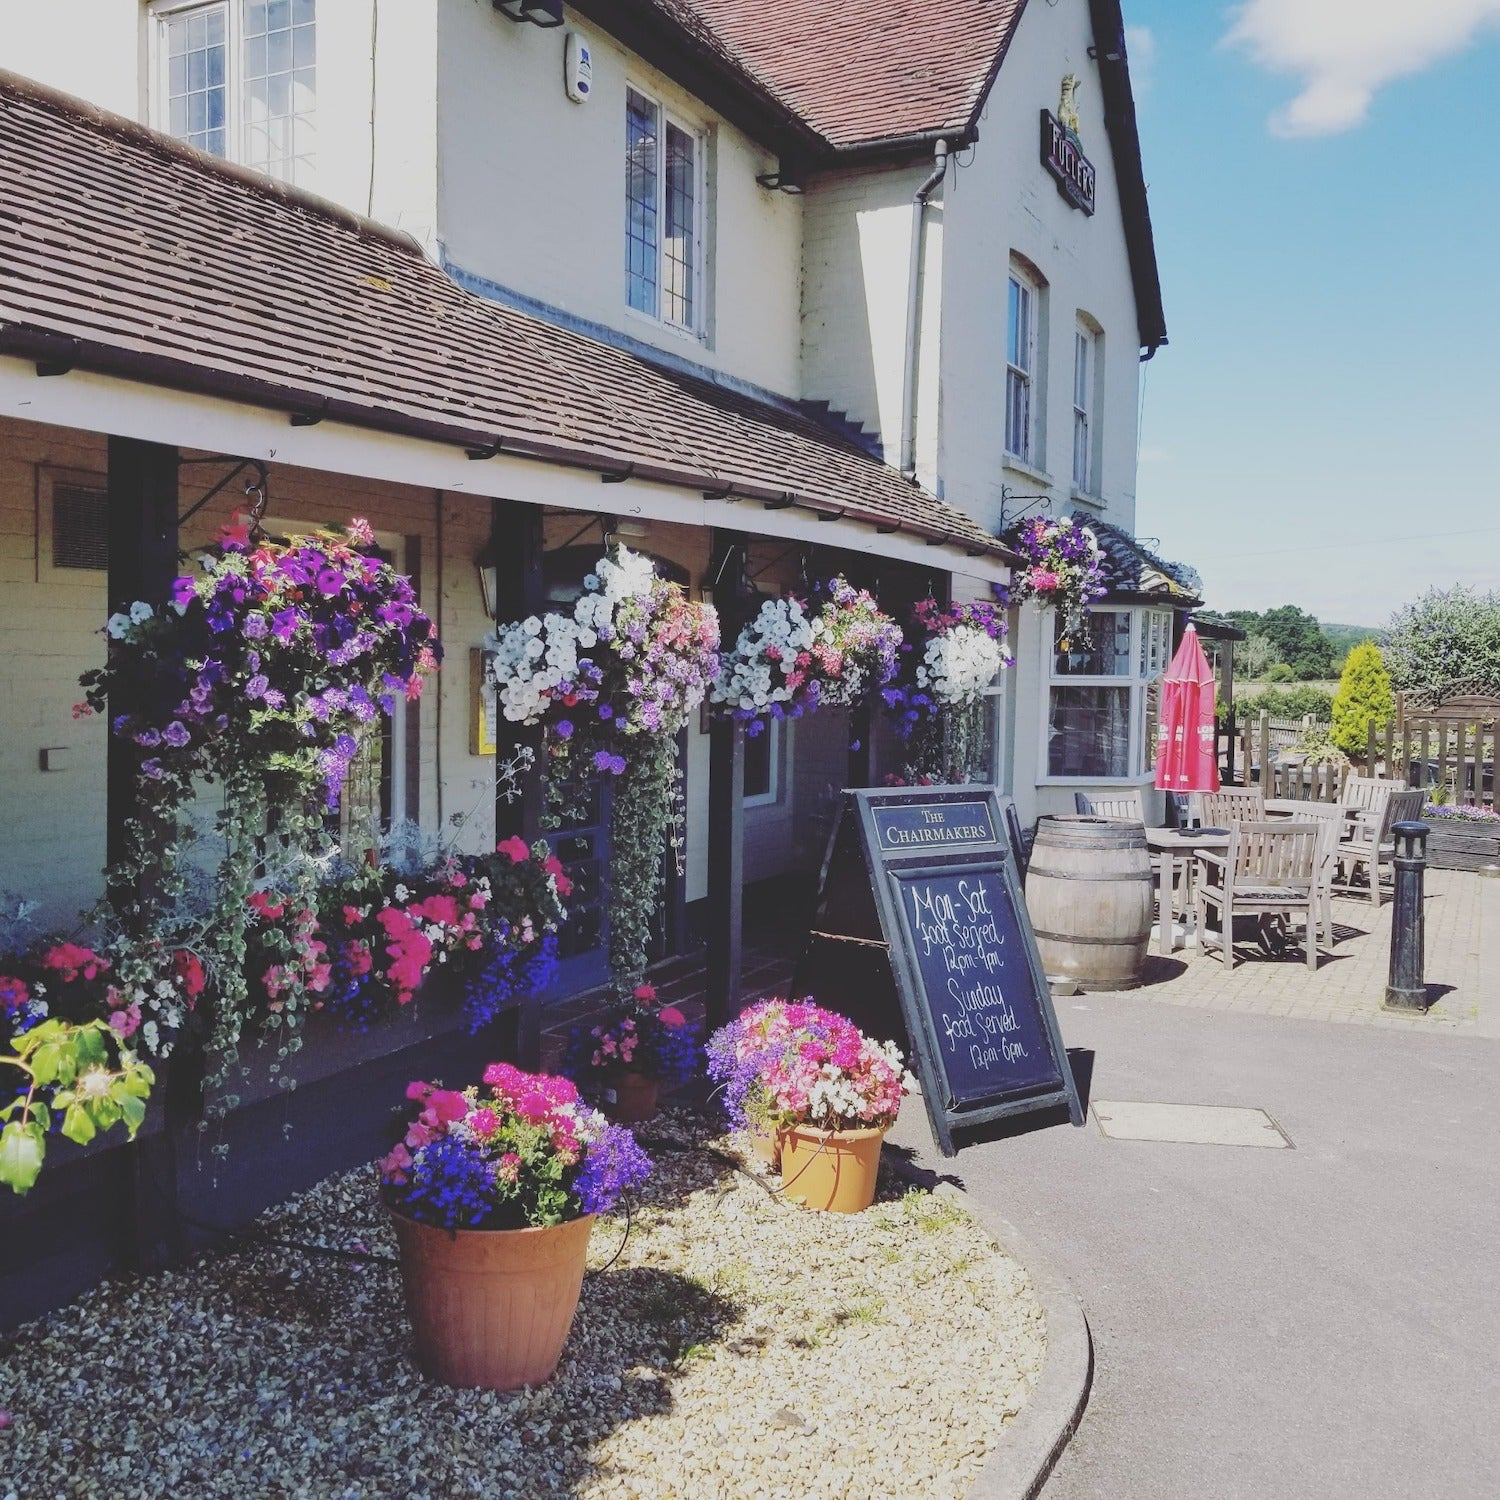 The Chairmakers Arms, Hambledon, Hampshire